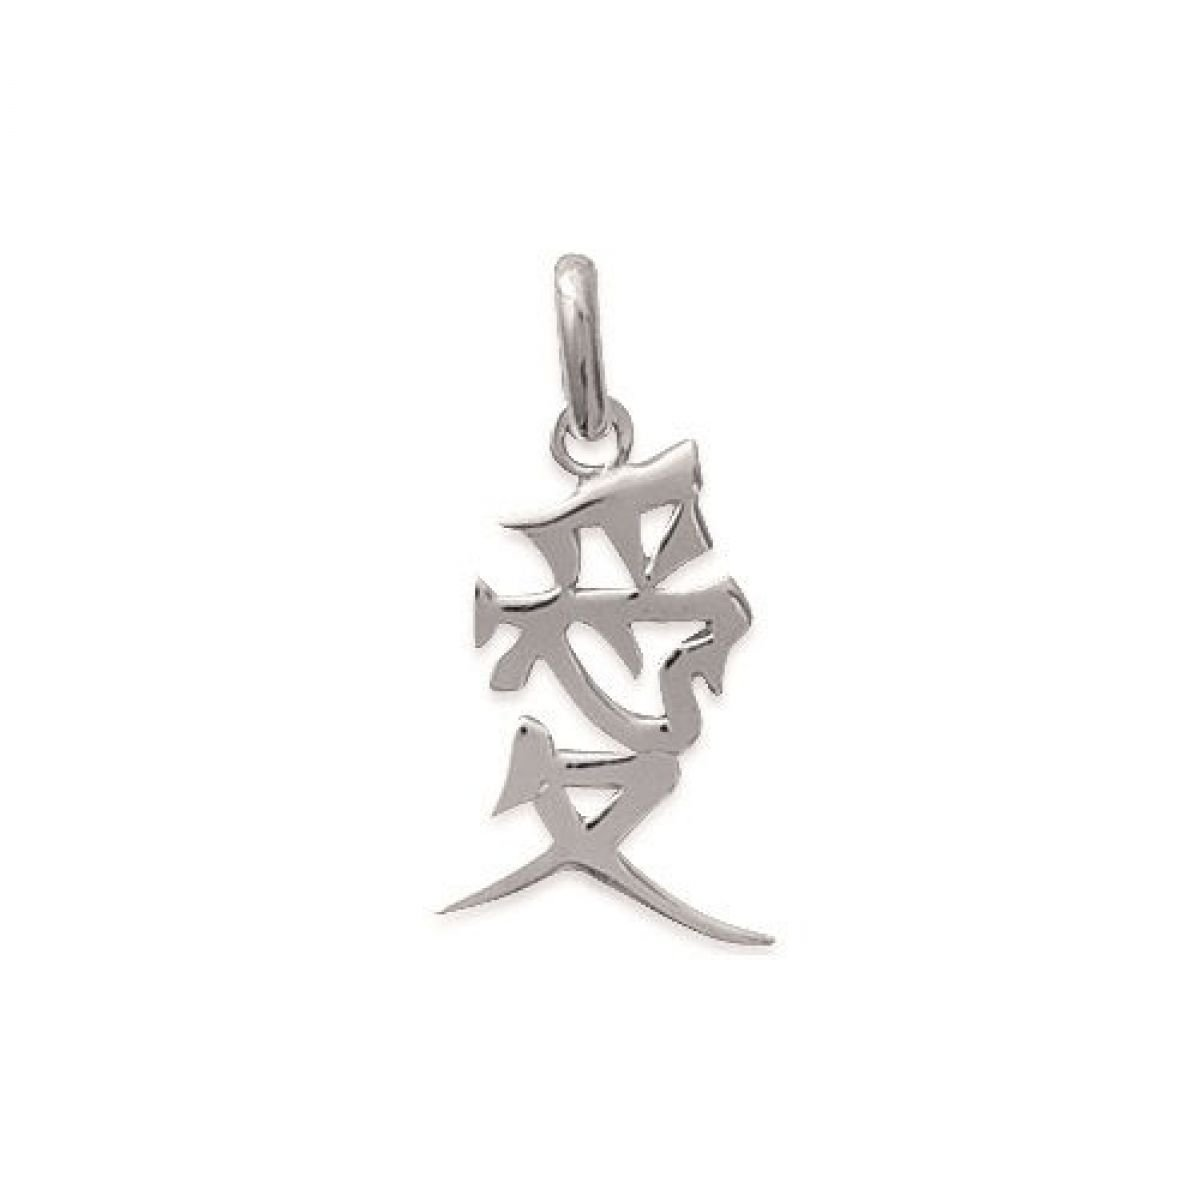 MARY JANE - Pendentif Argent Femme/Homme - Larg:13mm / Haut:18mm - Argent 925/000 (Chinois) 11CF0J05